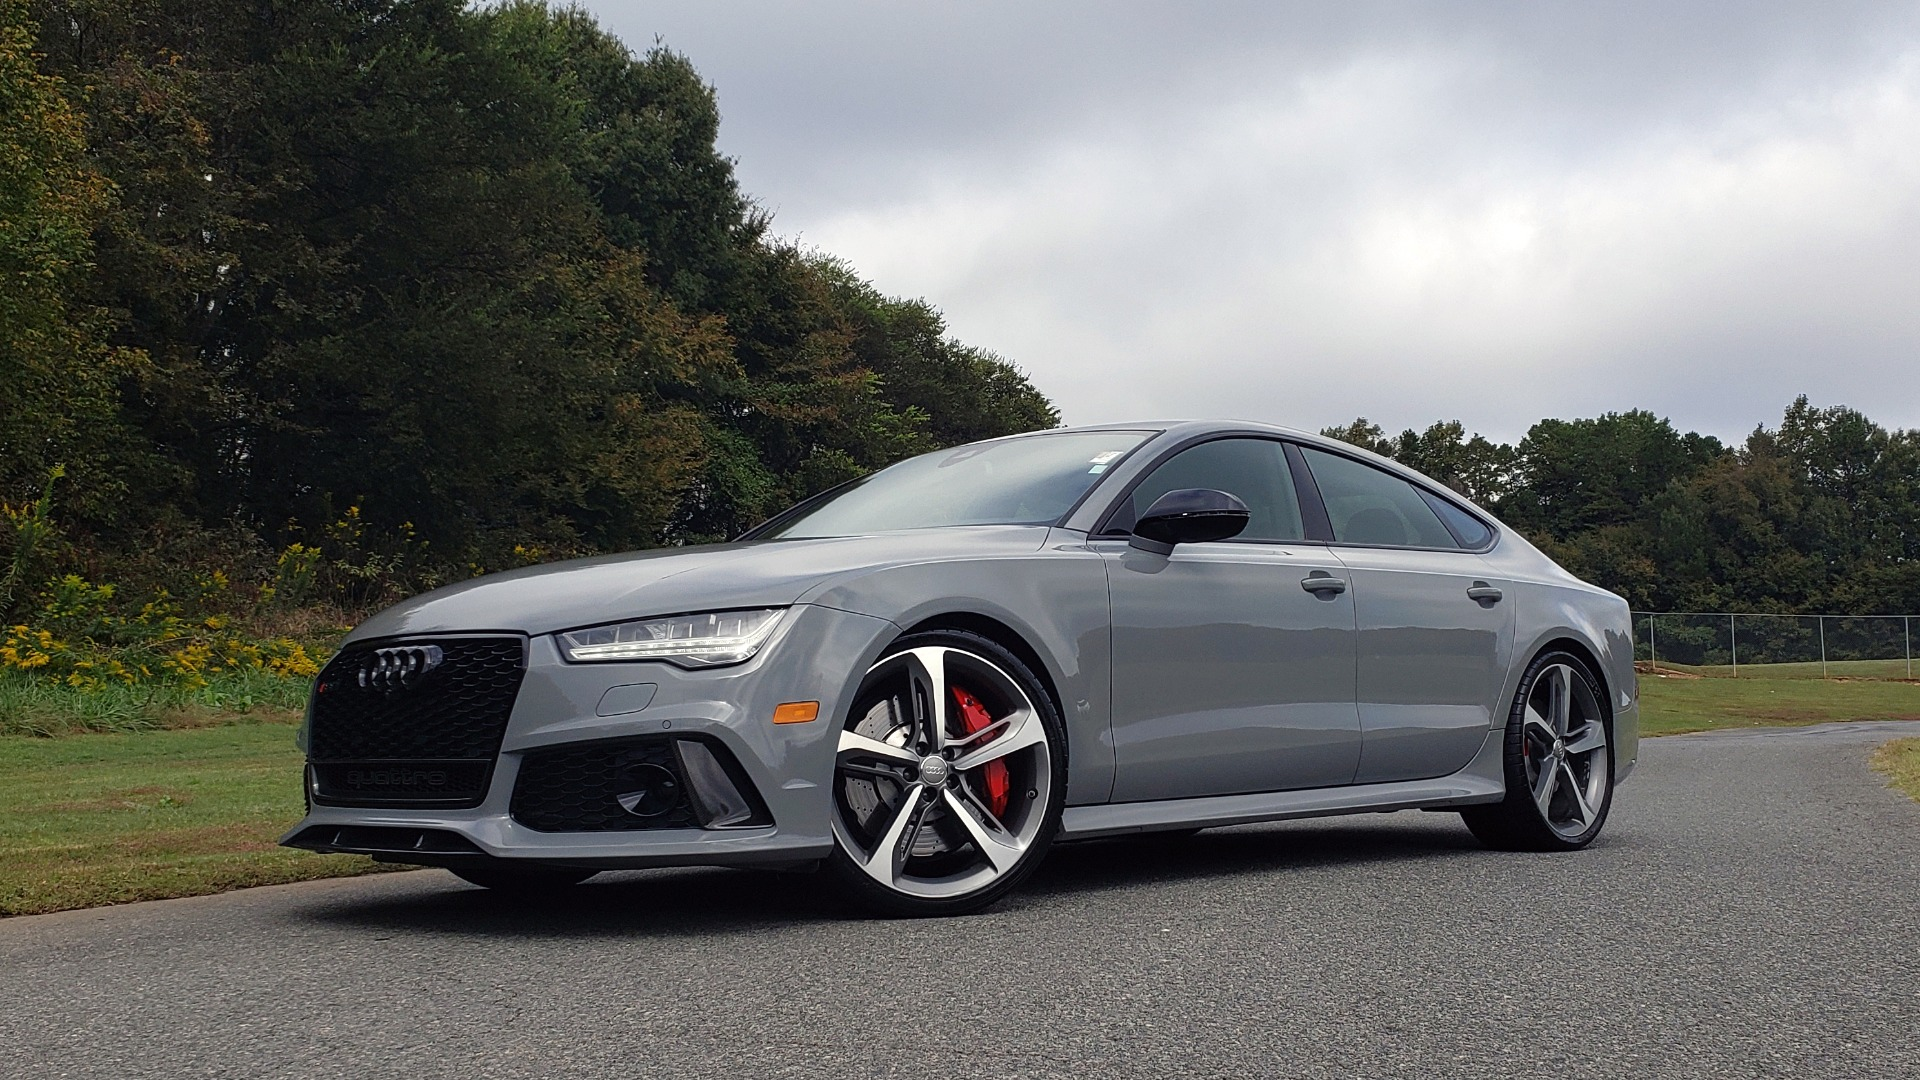 Used 2018 Audi RS 7 4.0T TIPTRONIC / CARBON OPTIC / DRVR ASST / NAV / REARVIEW for sale $91,625 at Formula One Imports in Charlotte NC 28227 1